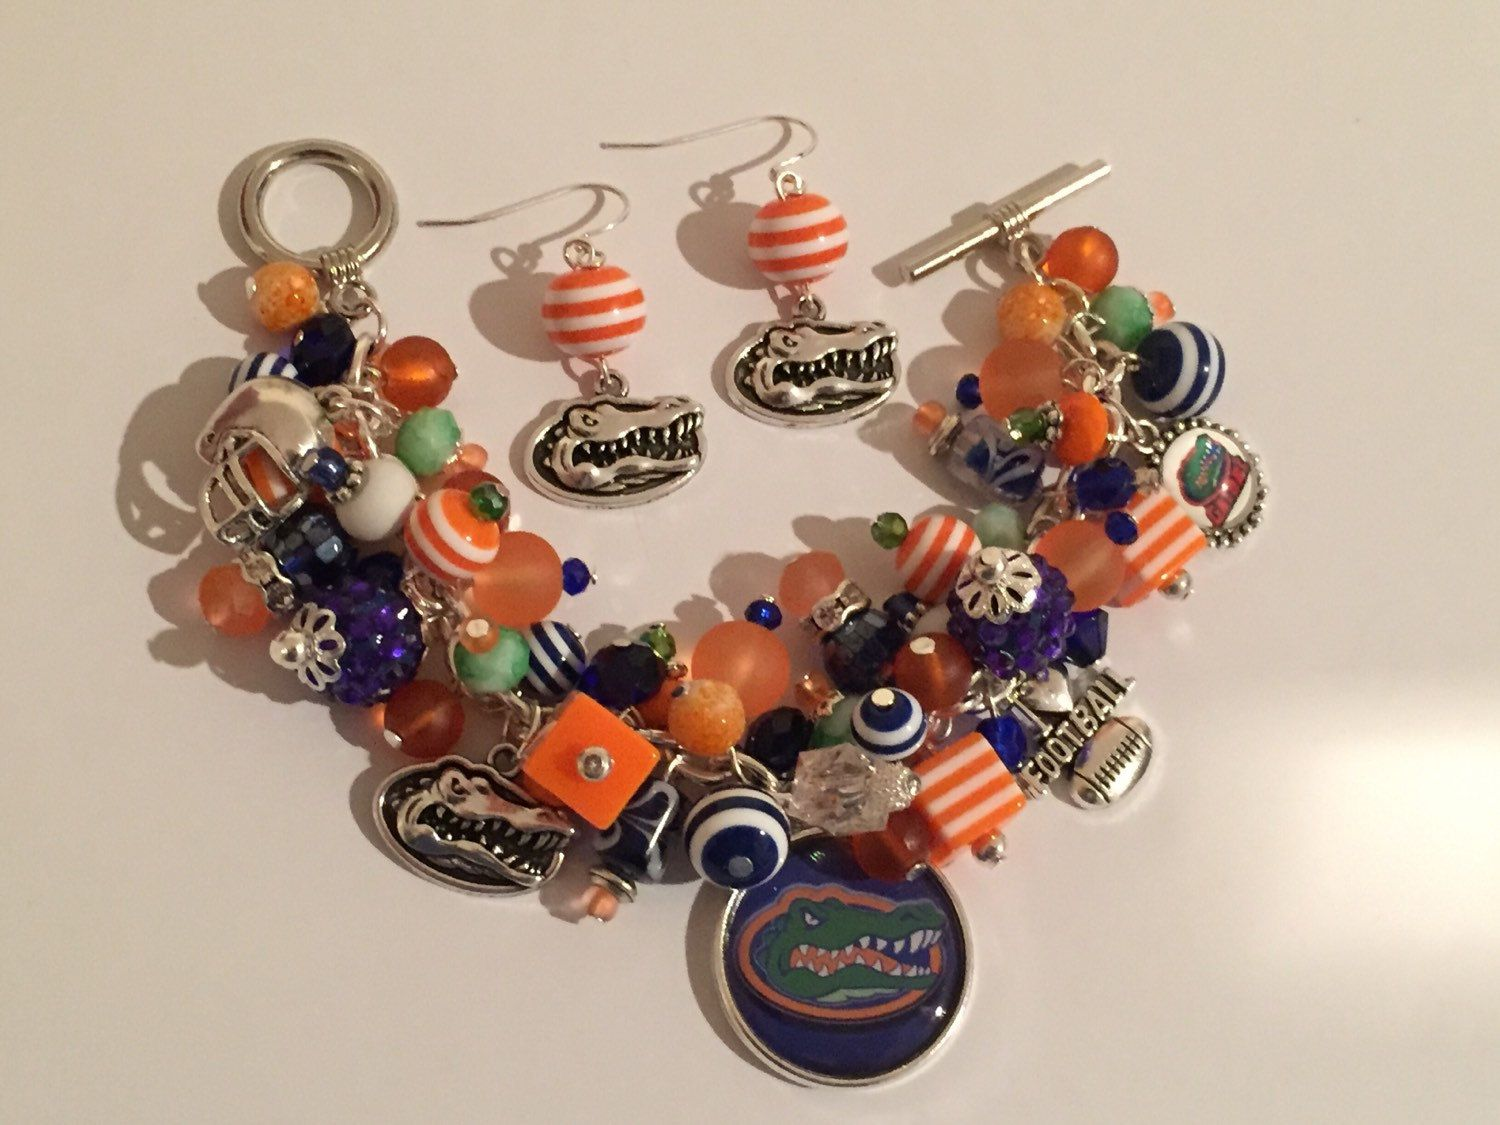 Handmade Florida Gators Charm Bracelet & Matching Earrings: Chunky Cluster Bracelet with various Orange and Blue beads by RoyalStreetBoutique on Etsy